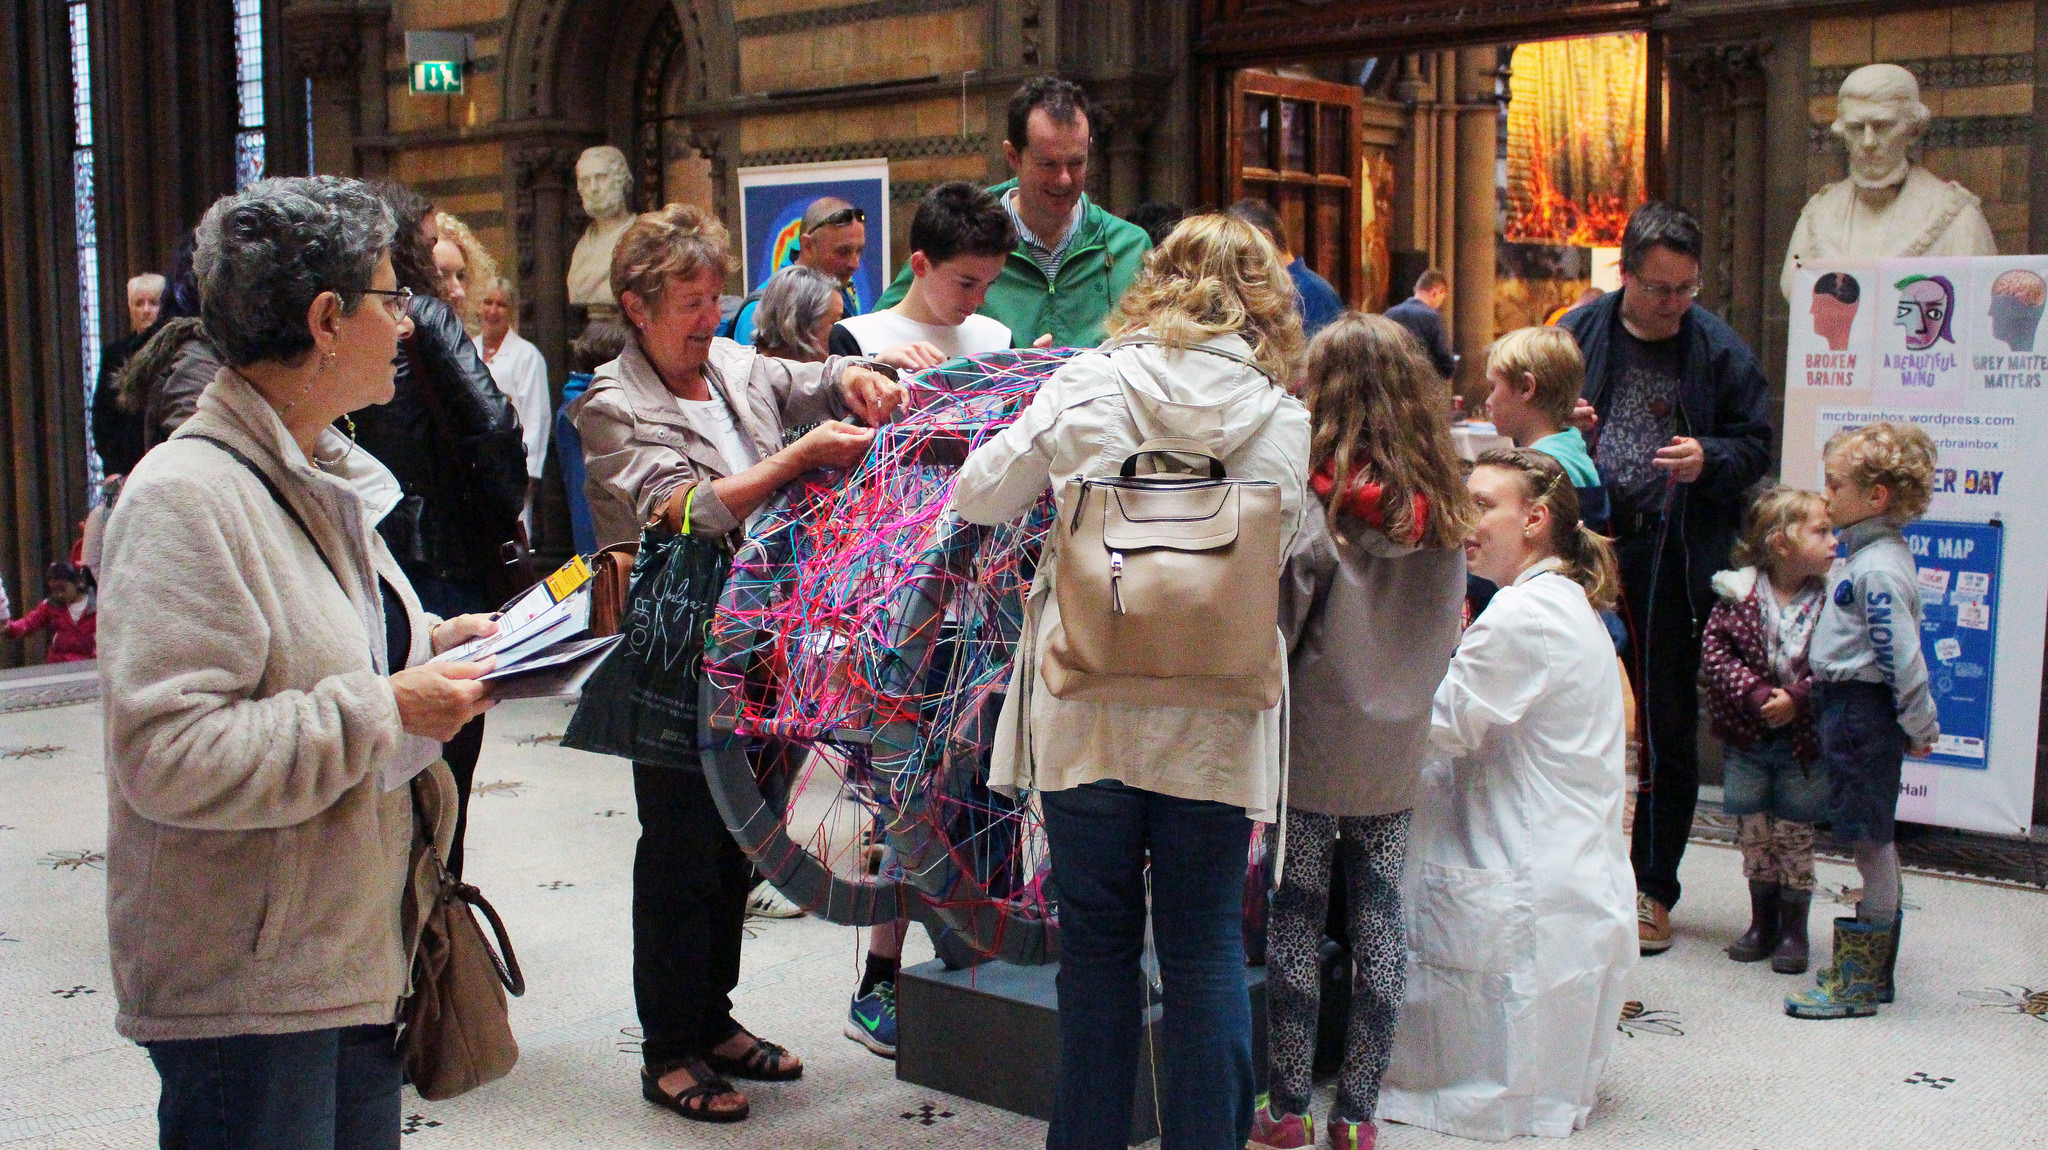 Participants add neurons (wool) to a giant wooden brain, as part of   The Brain Box   event.